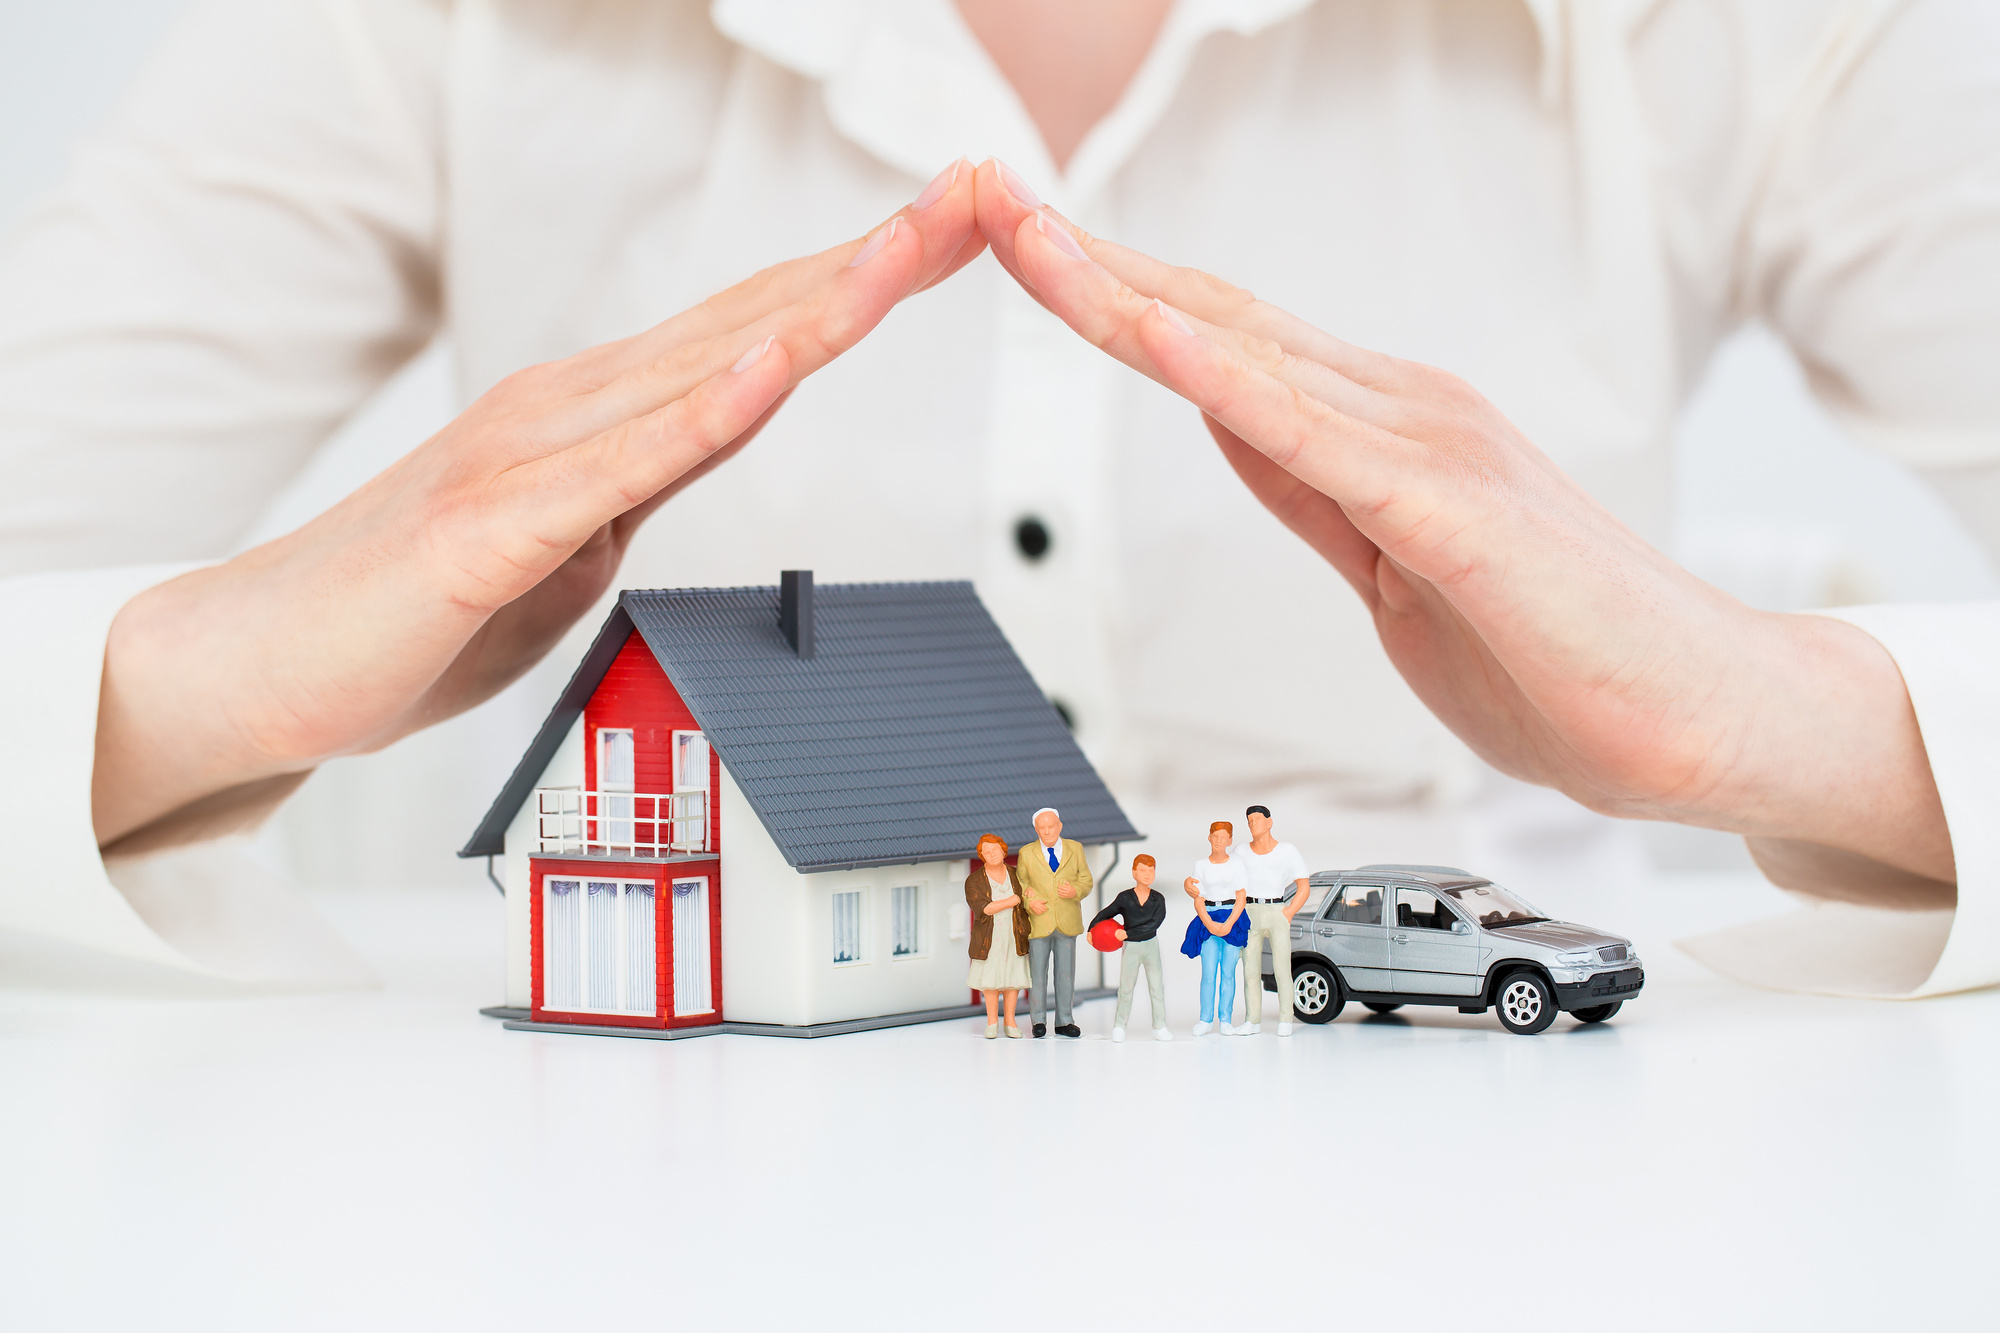 You should know what you can expect to pay when it comes to getting homeowners insurance. Here is the average cost of homeowners insurance.